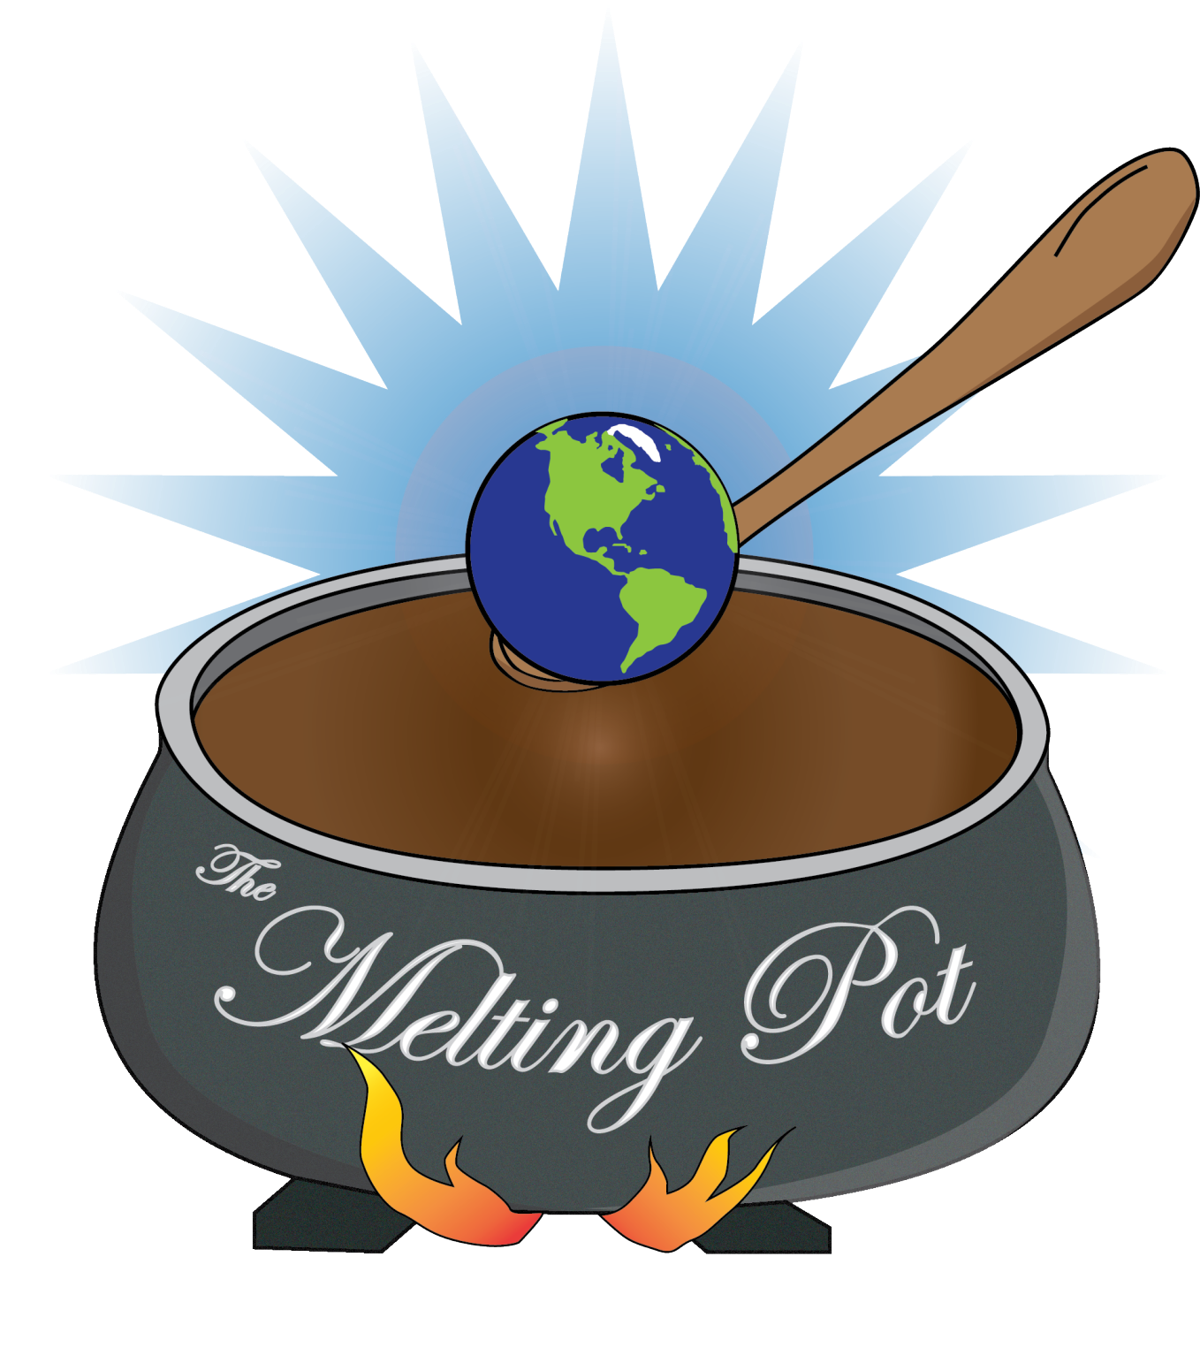 Cross culture clipart svg library stock Melting Pot Student Organization mixes cultures | Arts Entertainment ... svg library stock